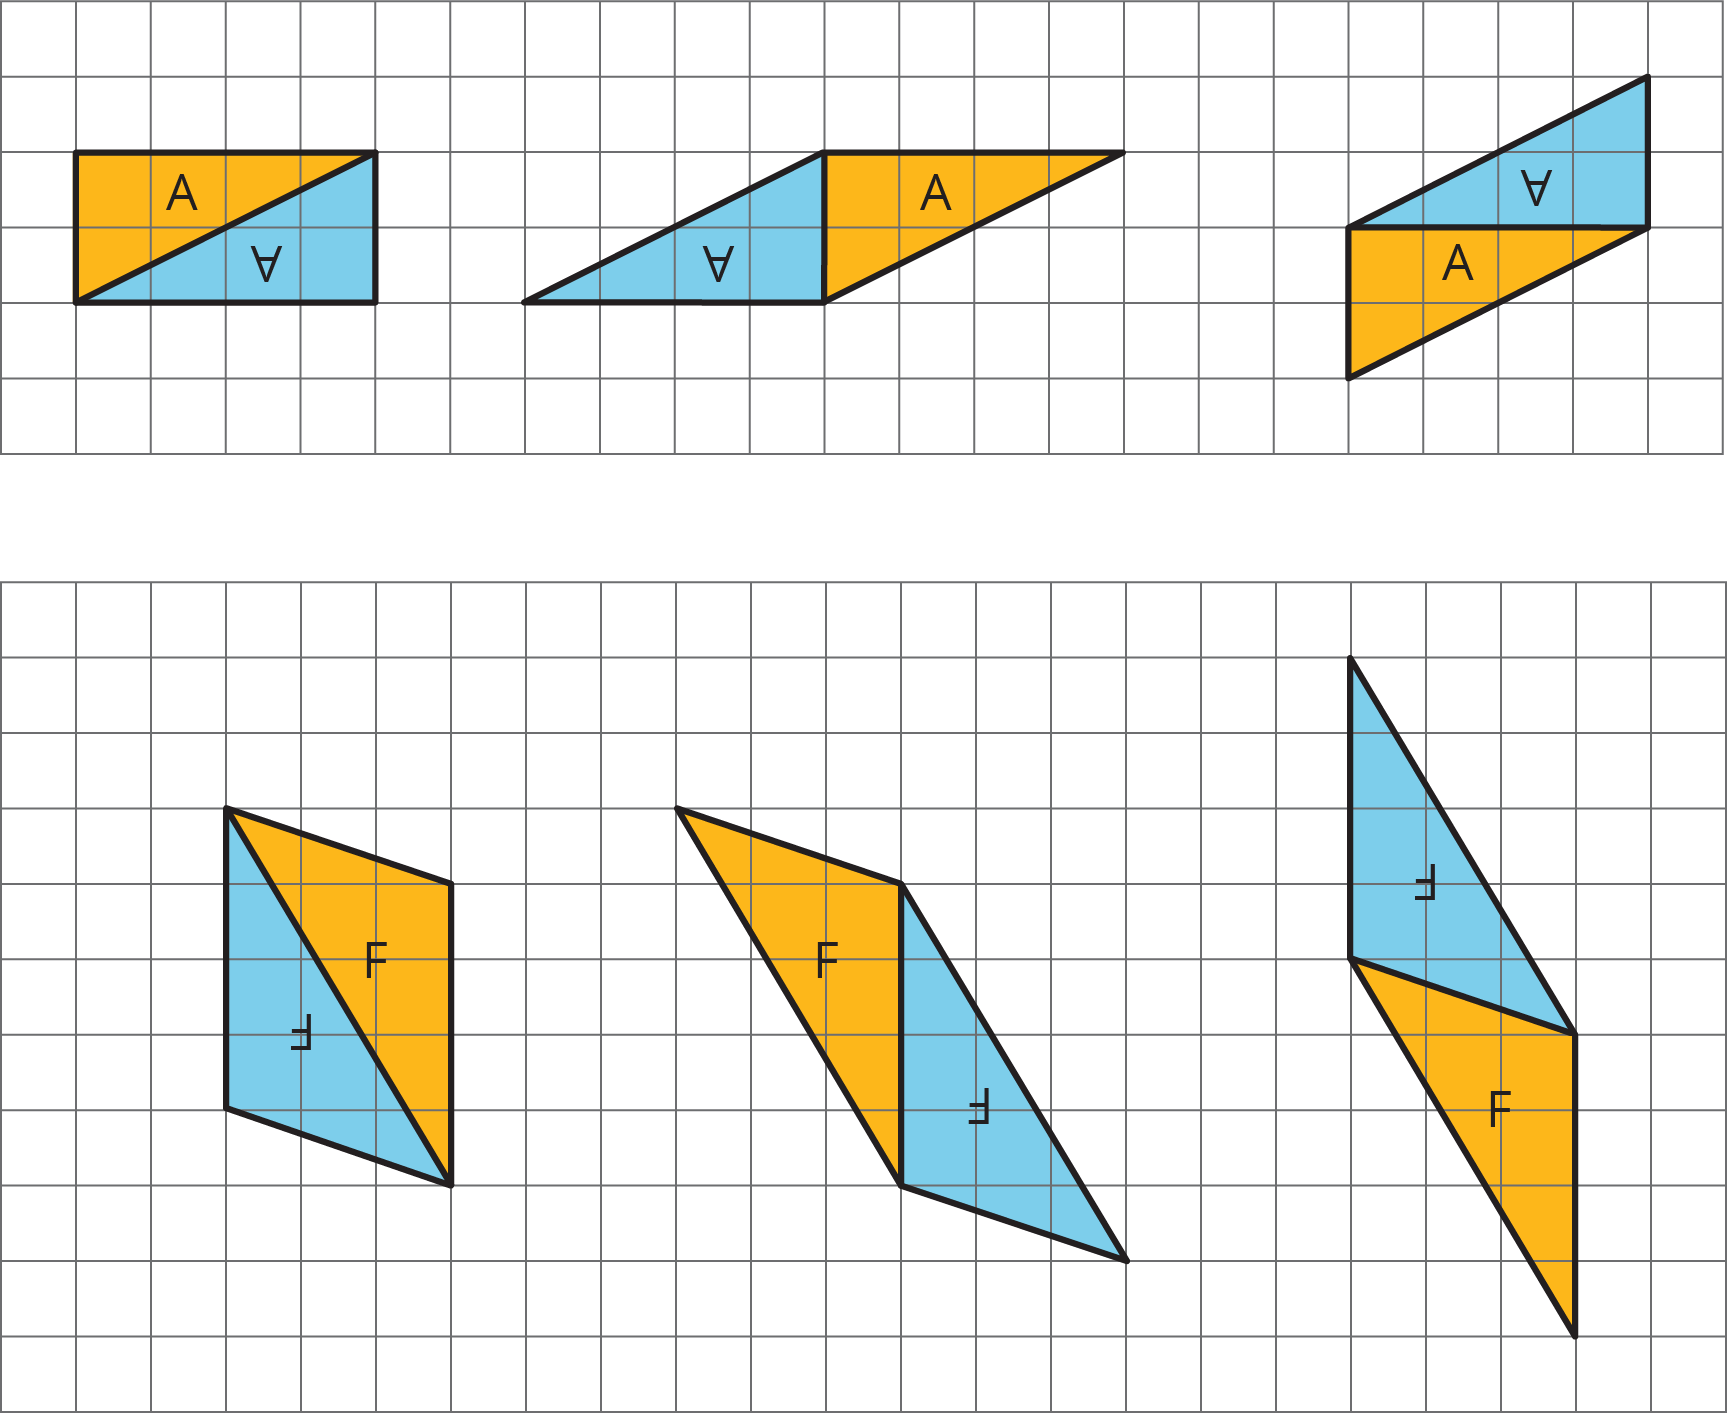 Six parallelograms composed from two identical triangles.